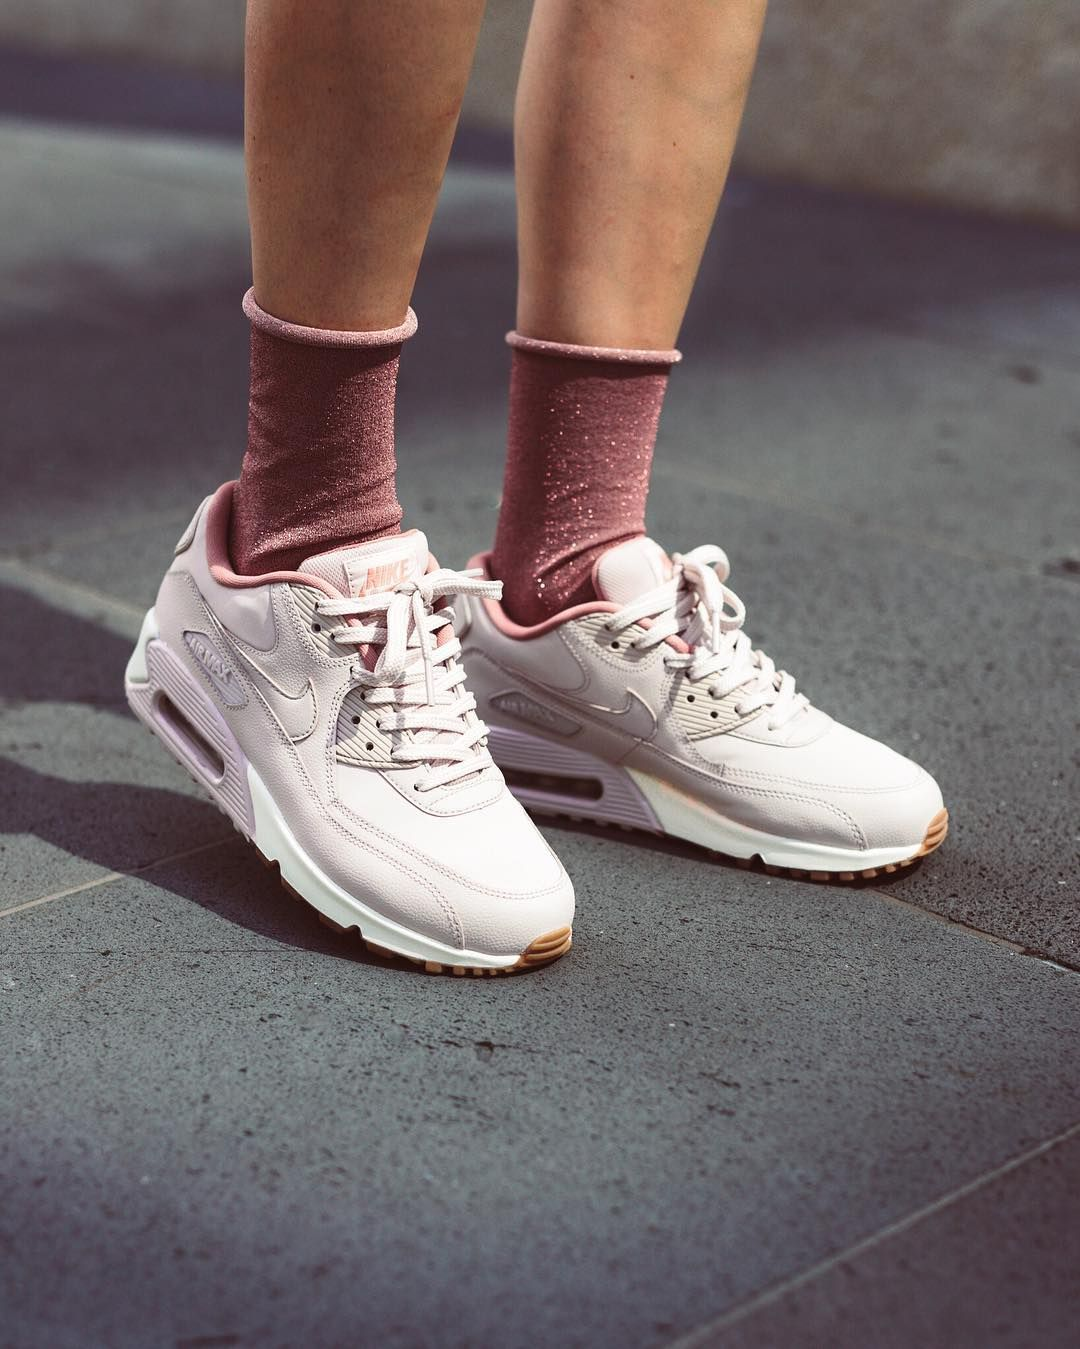 Nike Wmns Air Max 90 Leather Silt Red Nike Air Max Outfit Nike Free Shoes Nike Air Max For Women